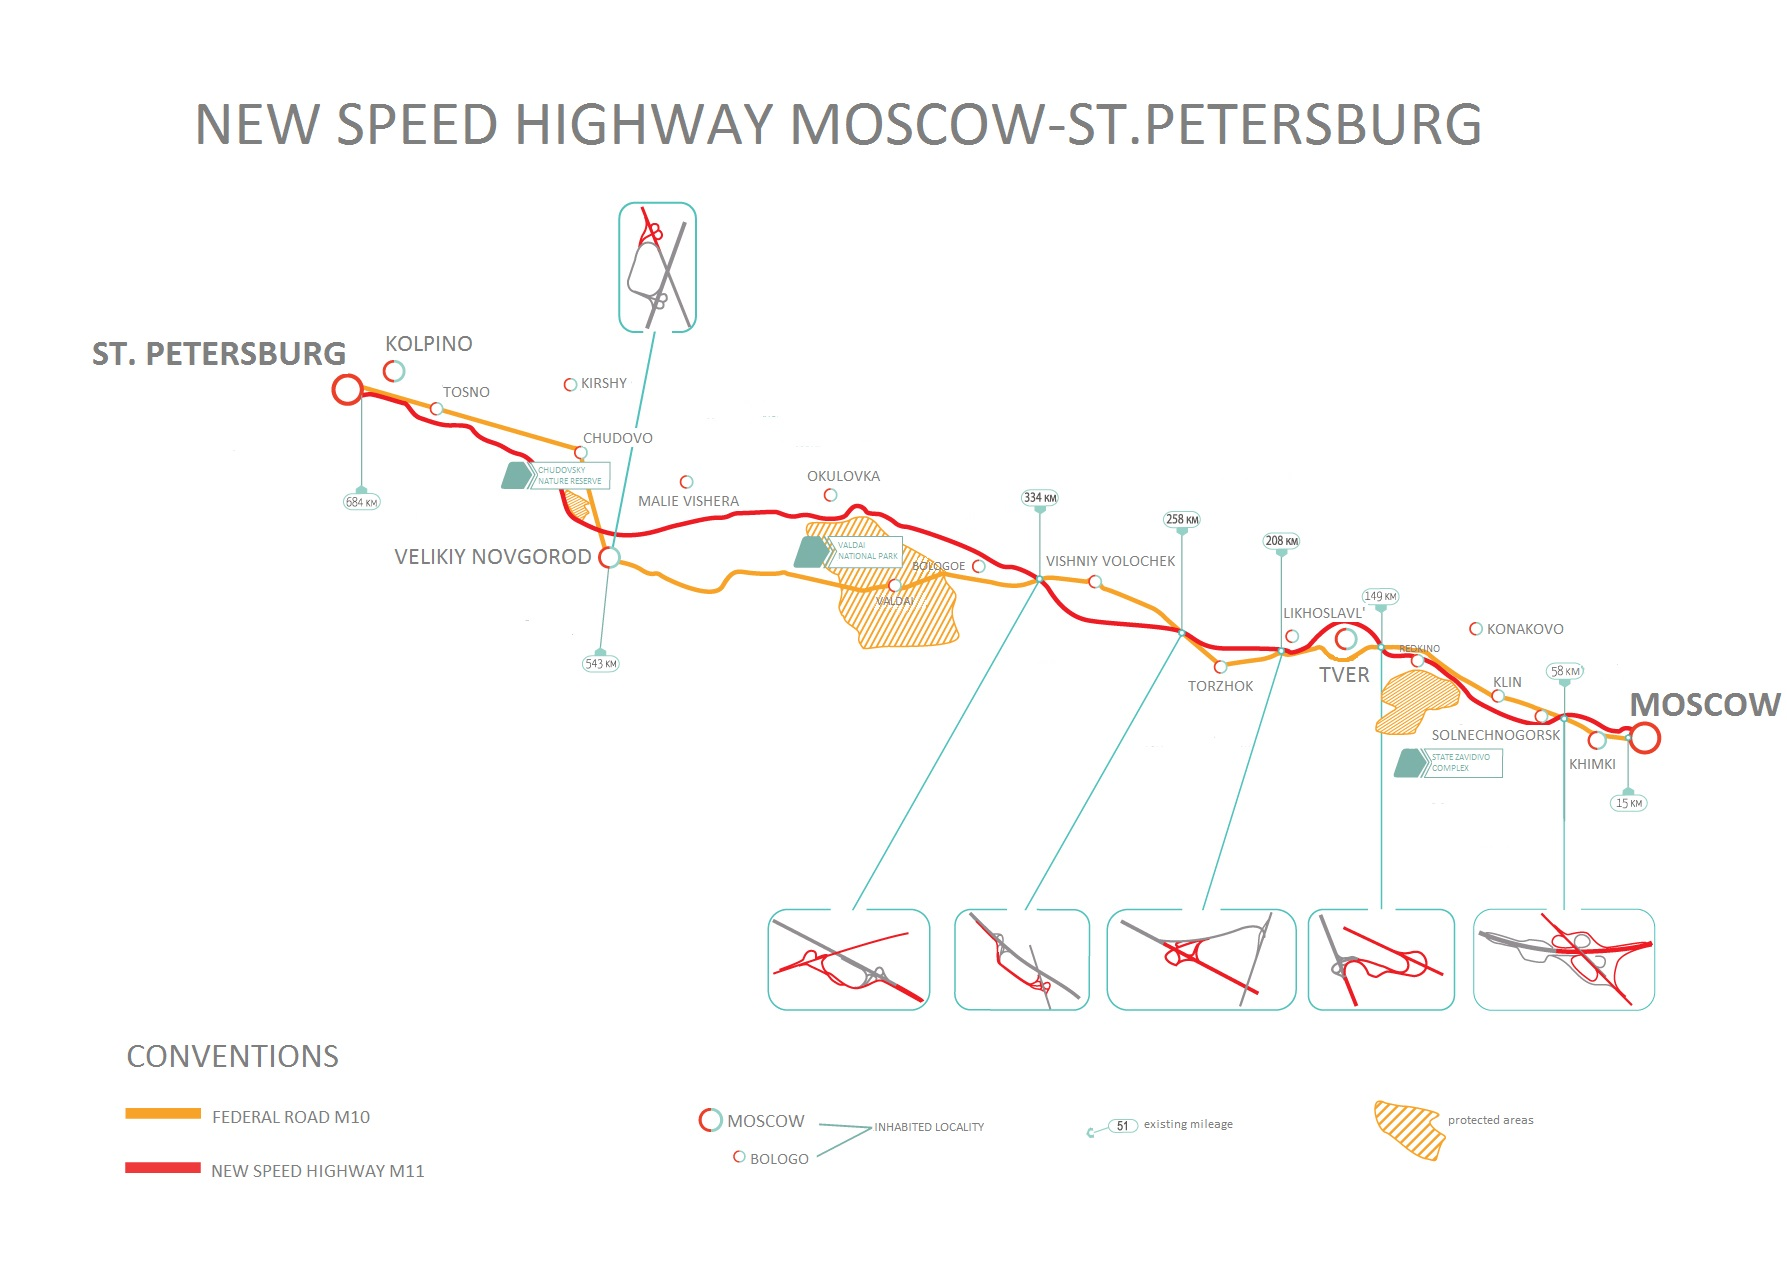 Part of the new M11 highway Moscow-St.Petersburg becomes toll